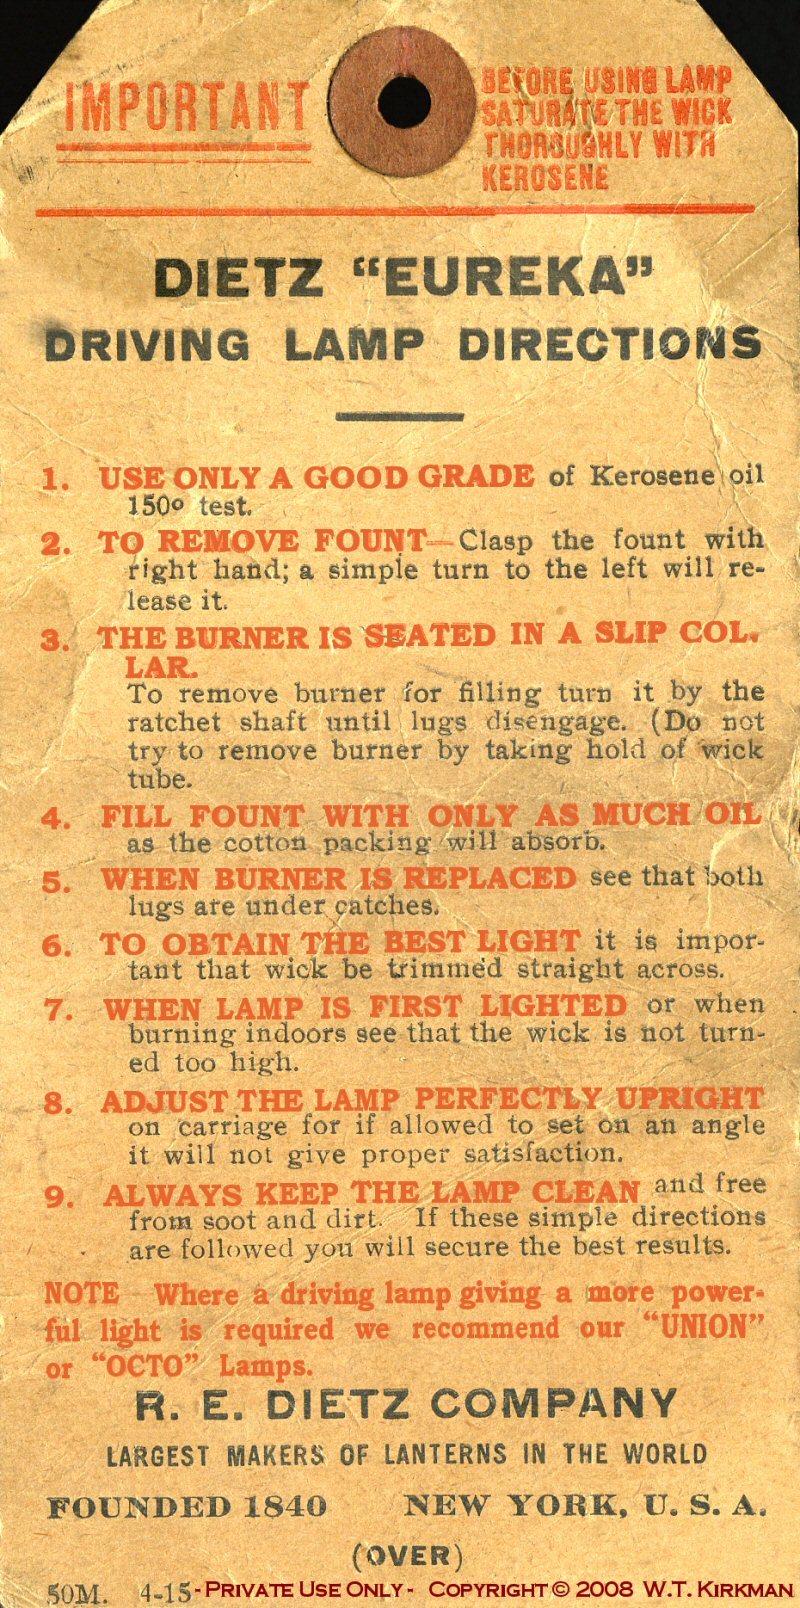 Eureka Driving Lamp Instructions